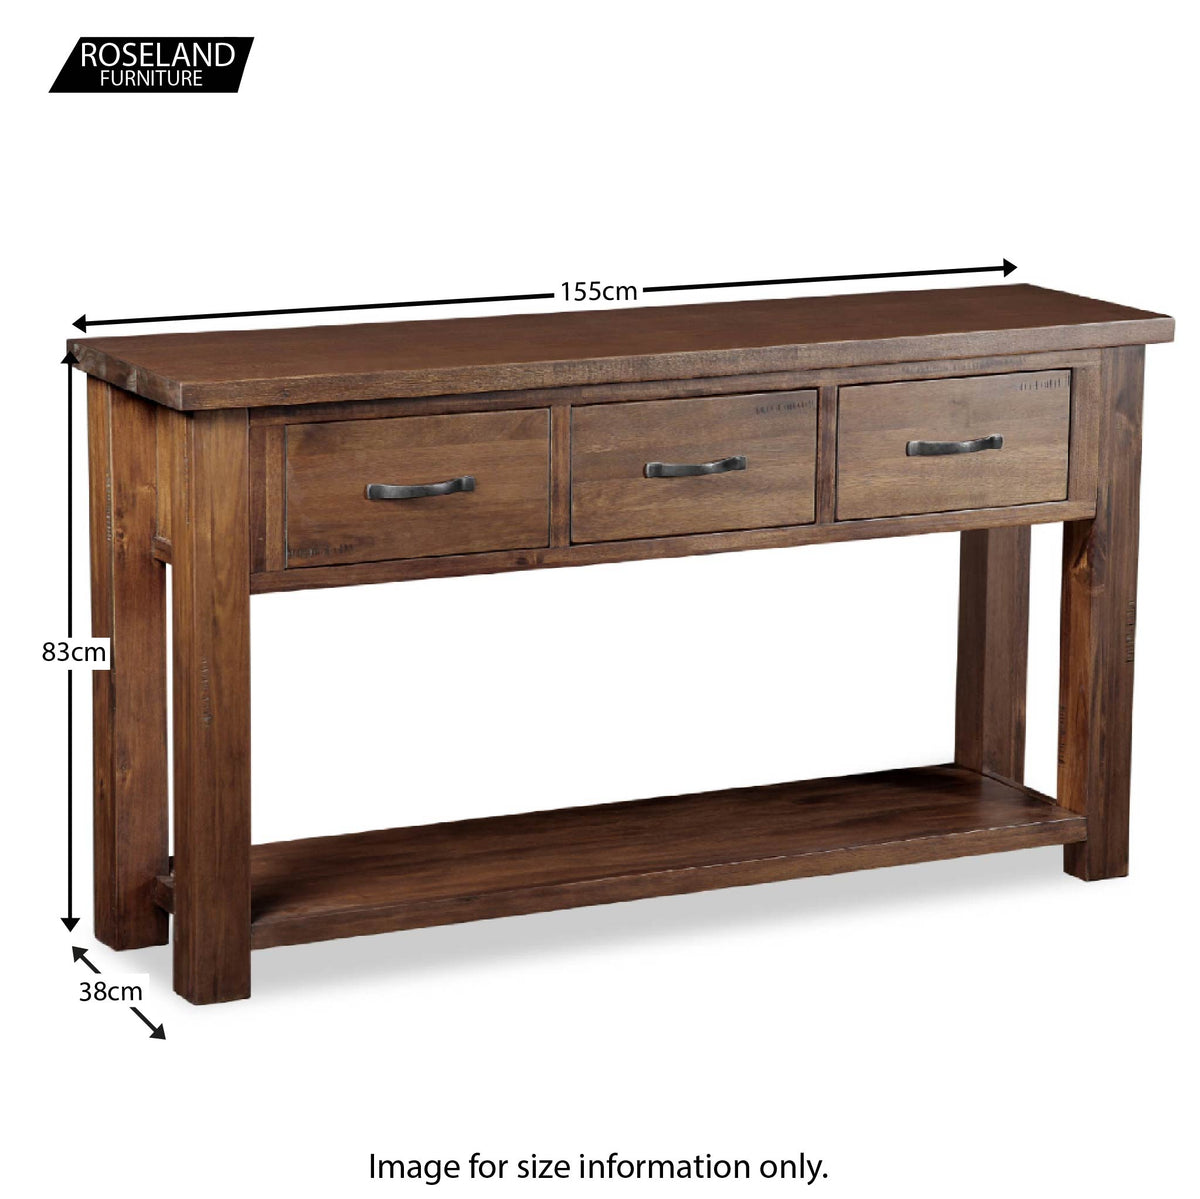 Dimensions - Ladock Console Table